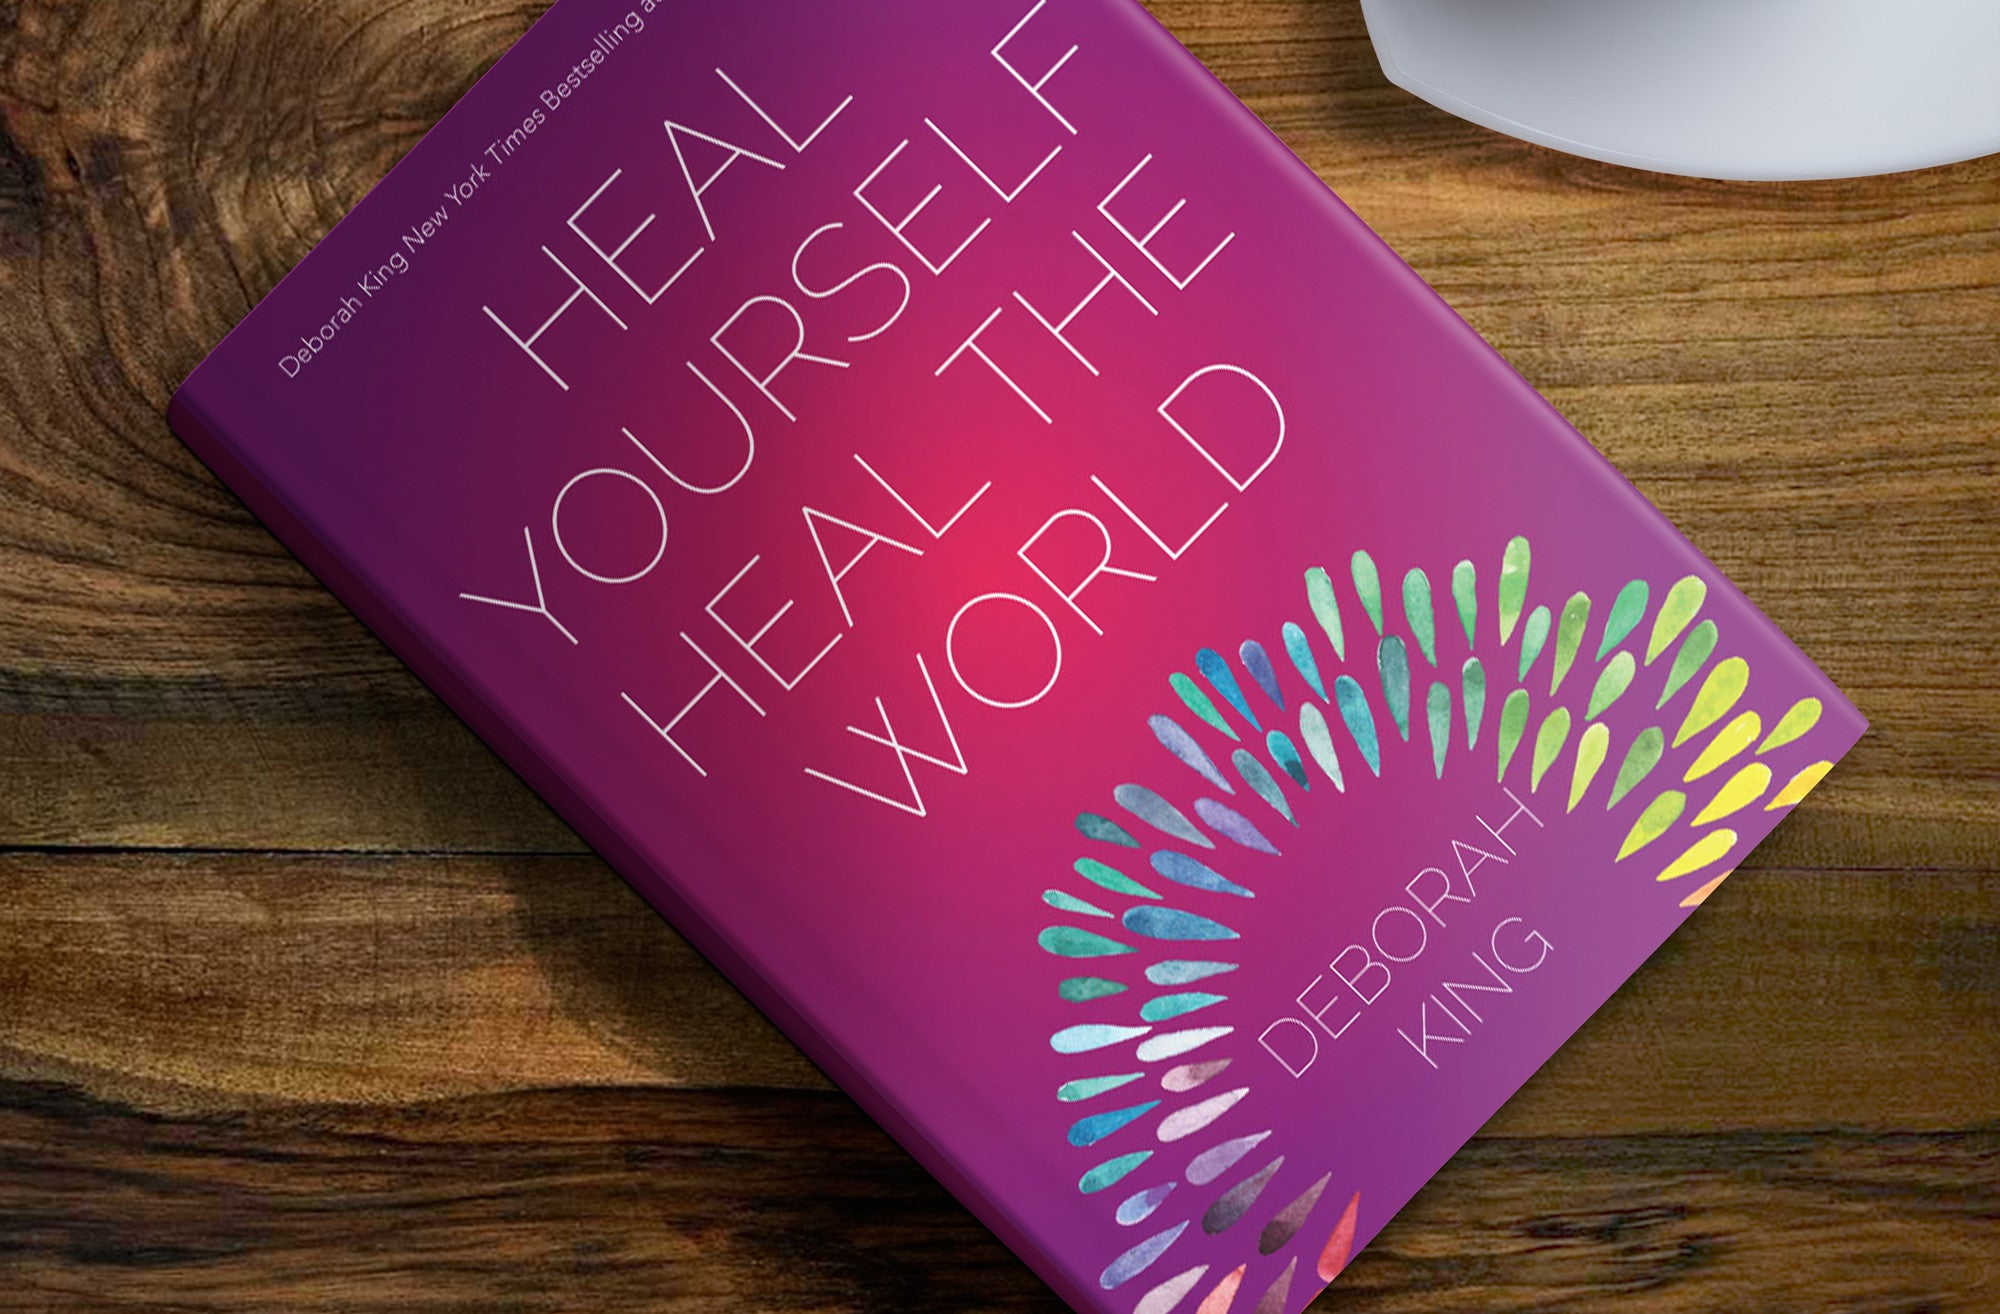 Heal Yourself--Heal the World, by Deborah King